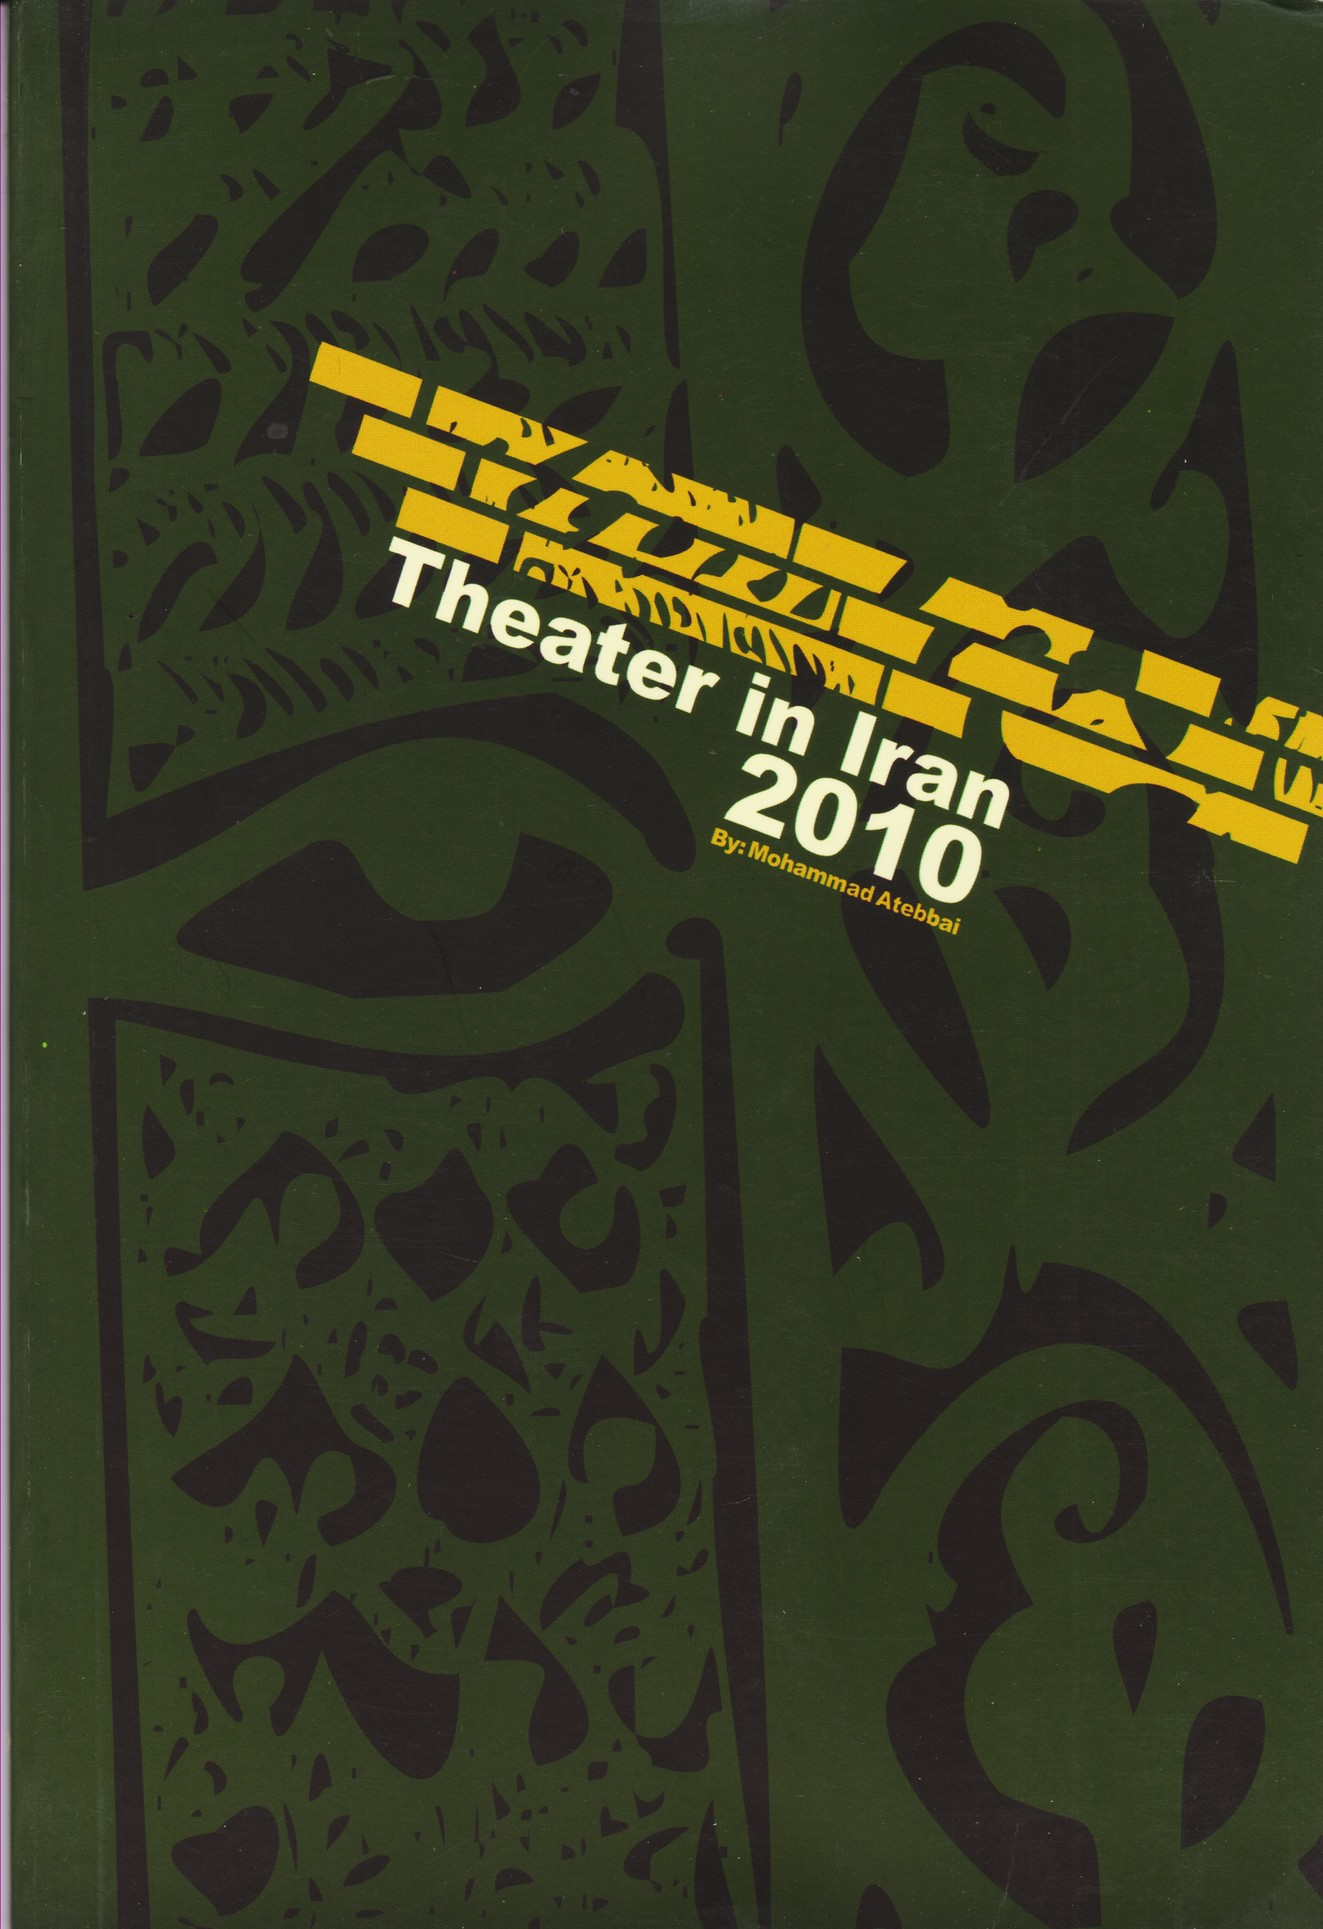 Theater in iranian 2010